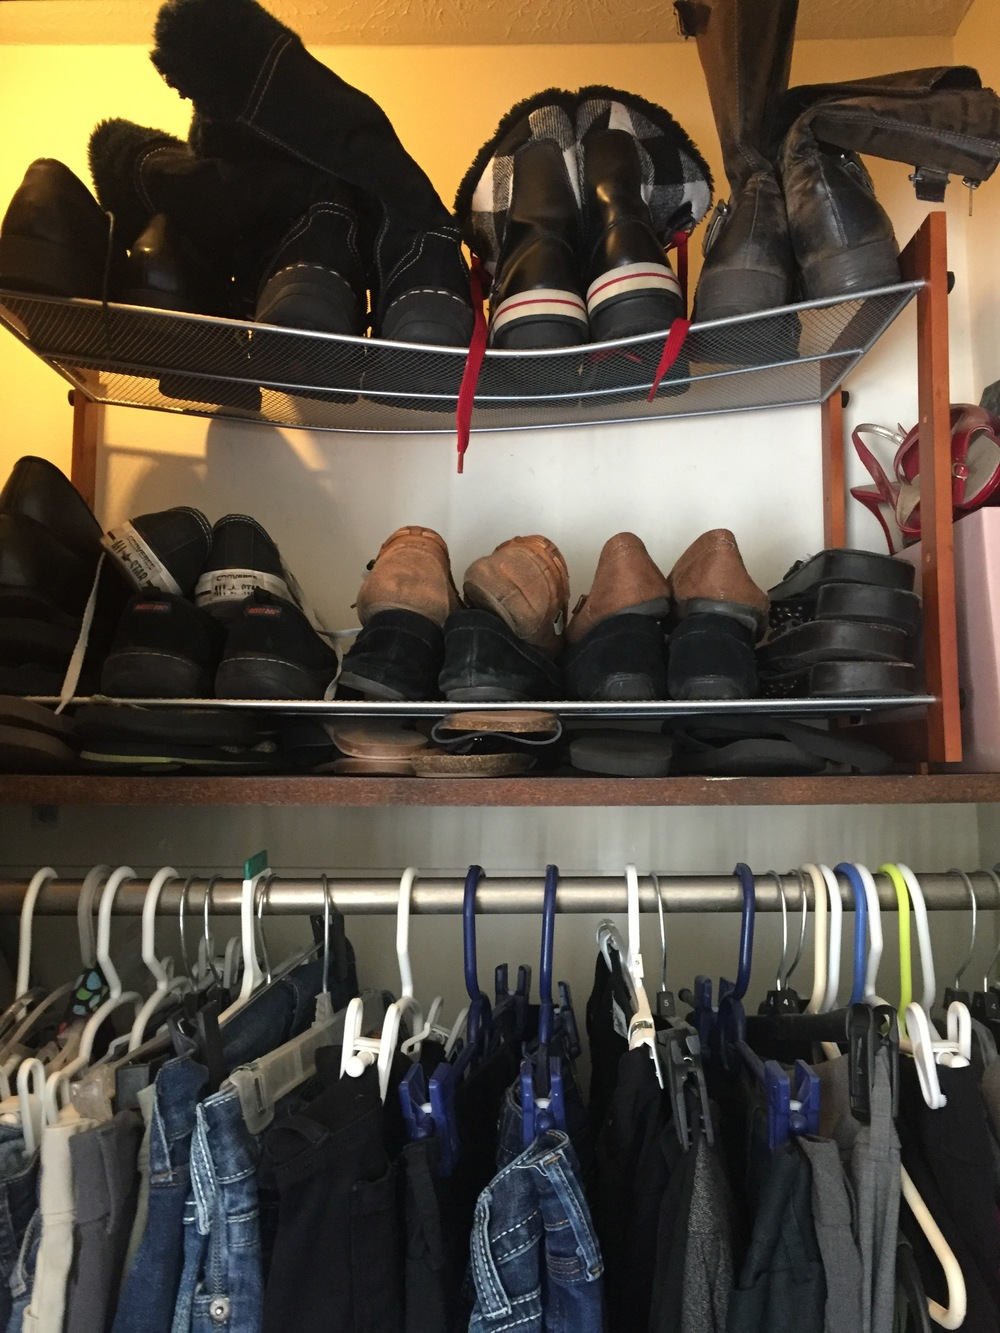 After - I moved the shoe shelf we were using in the Before images to my closet!